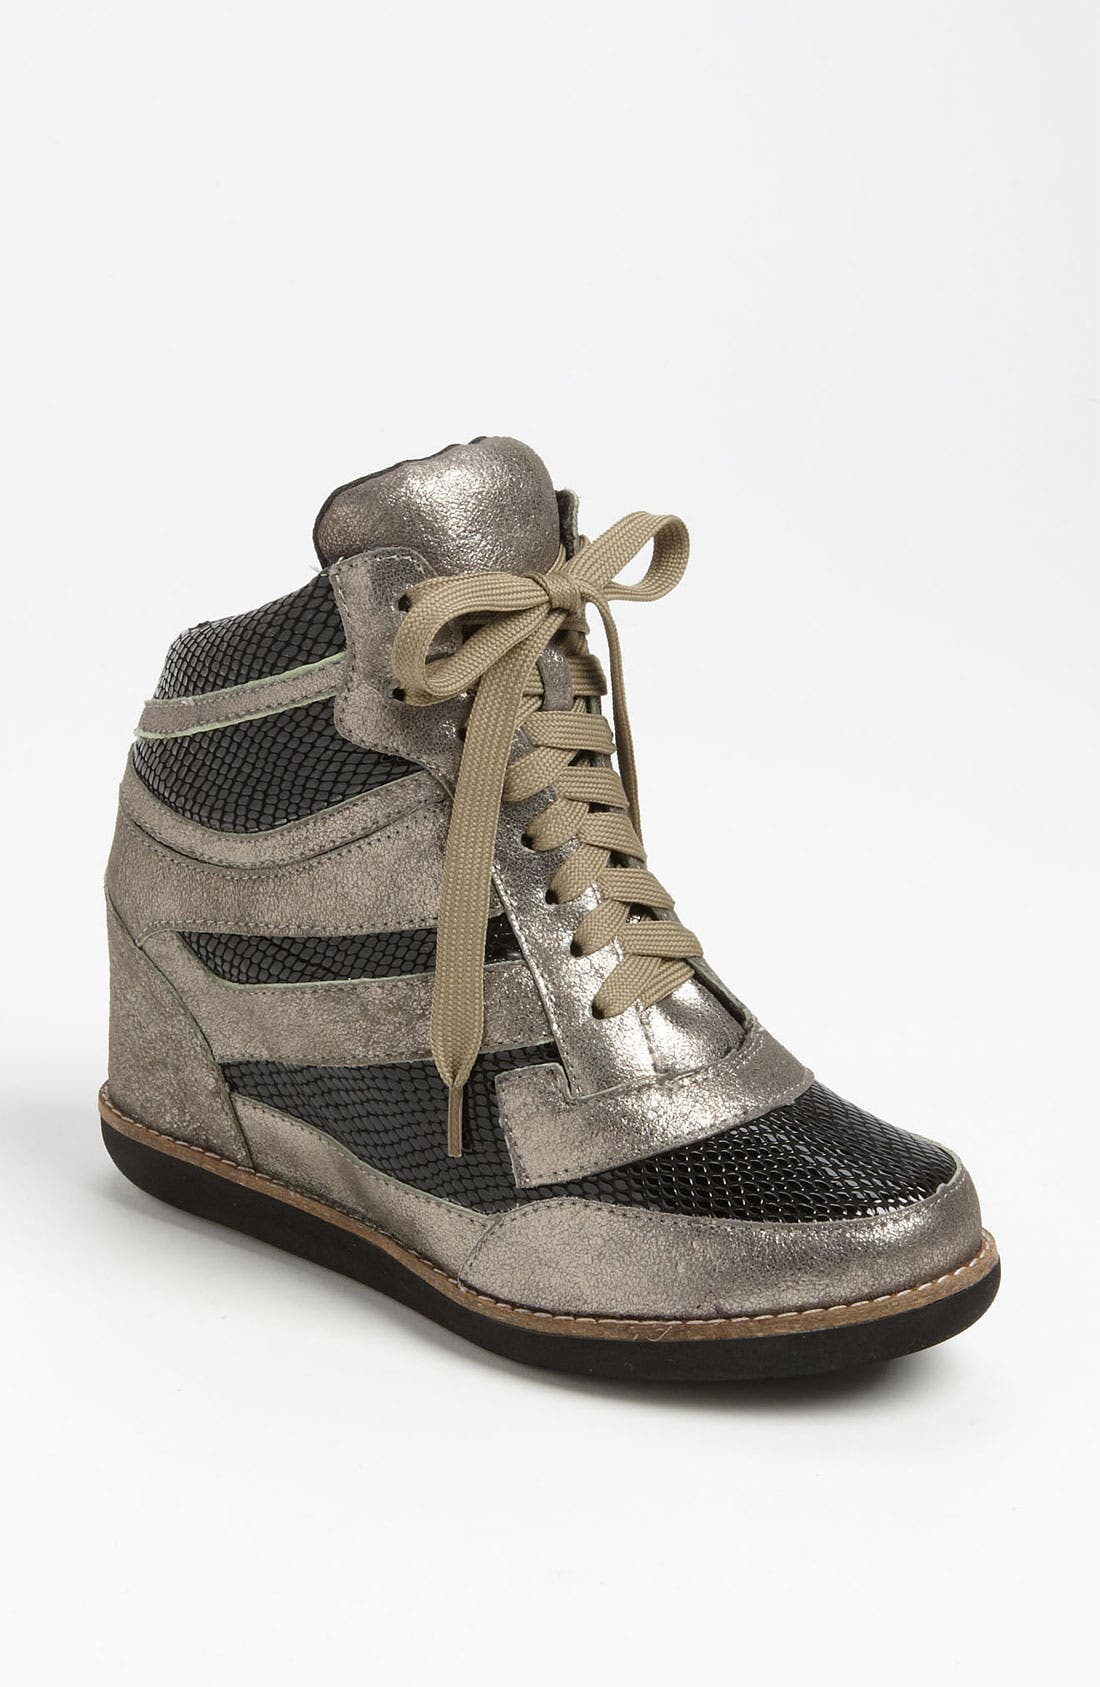 Alternate Image 1 Selected - Jeffrey Campbell 'Gio' Hidden Wedge Sneaker